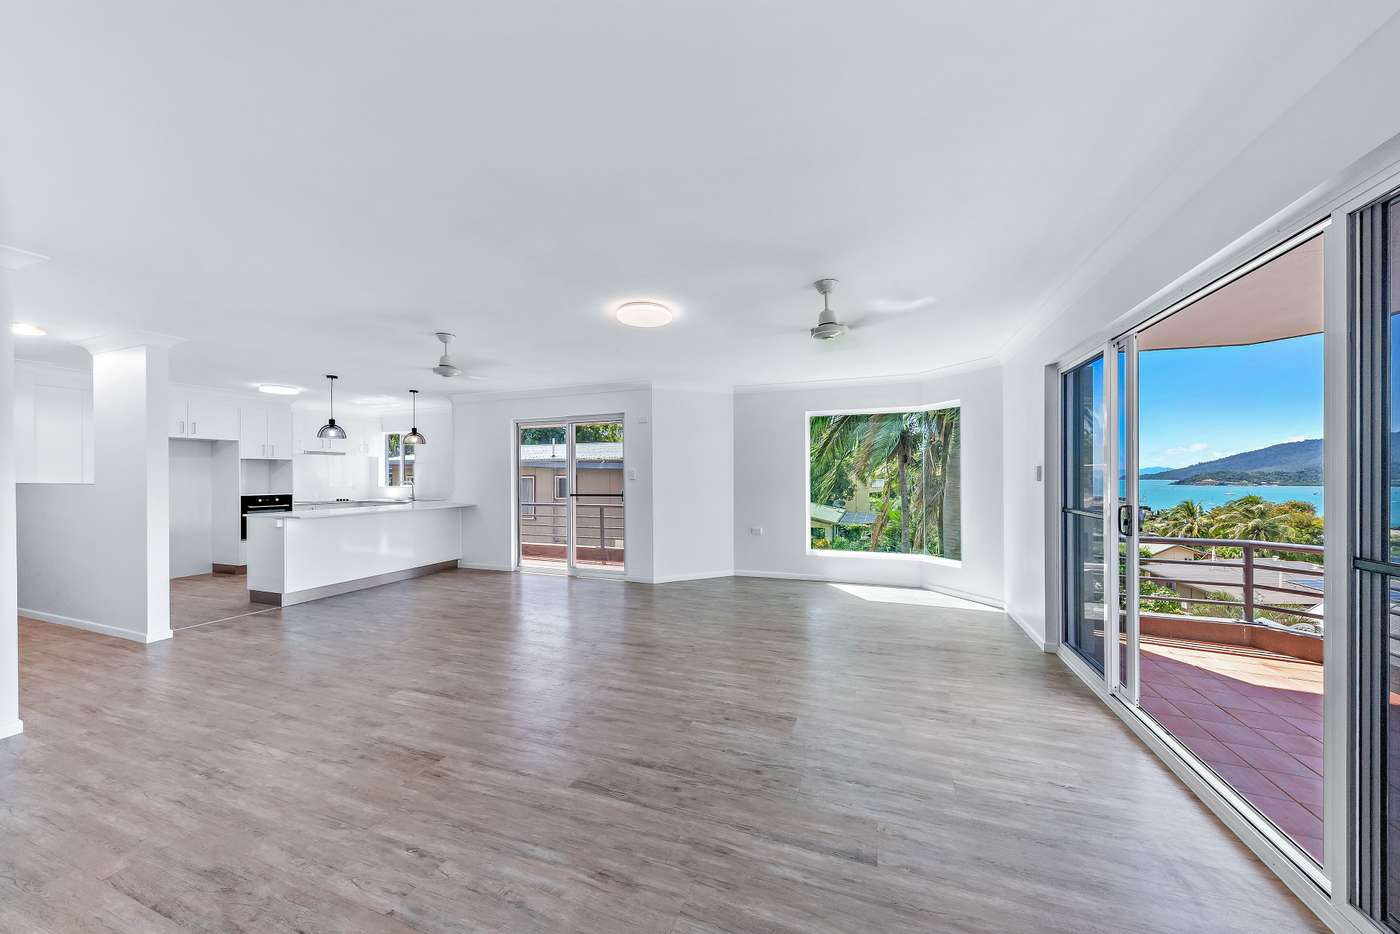 Main view of Homely house listing, 2/5 Lewis Street, Airlie Beach QLD 4802